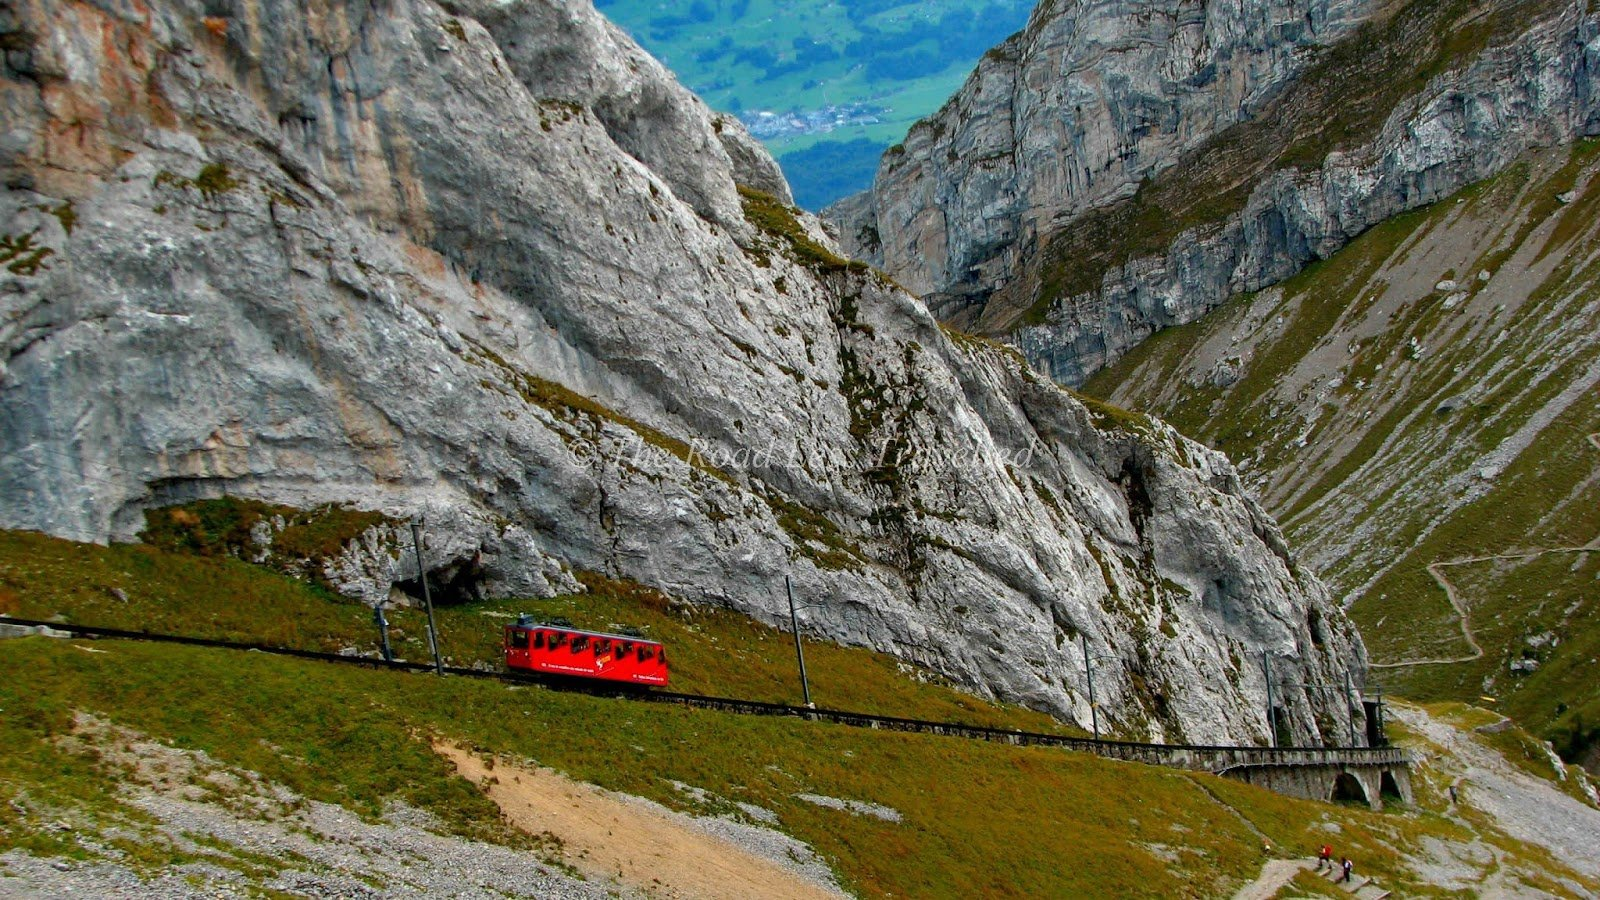 dangerous railways The Pilatus Railway